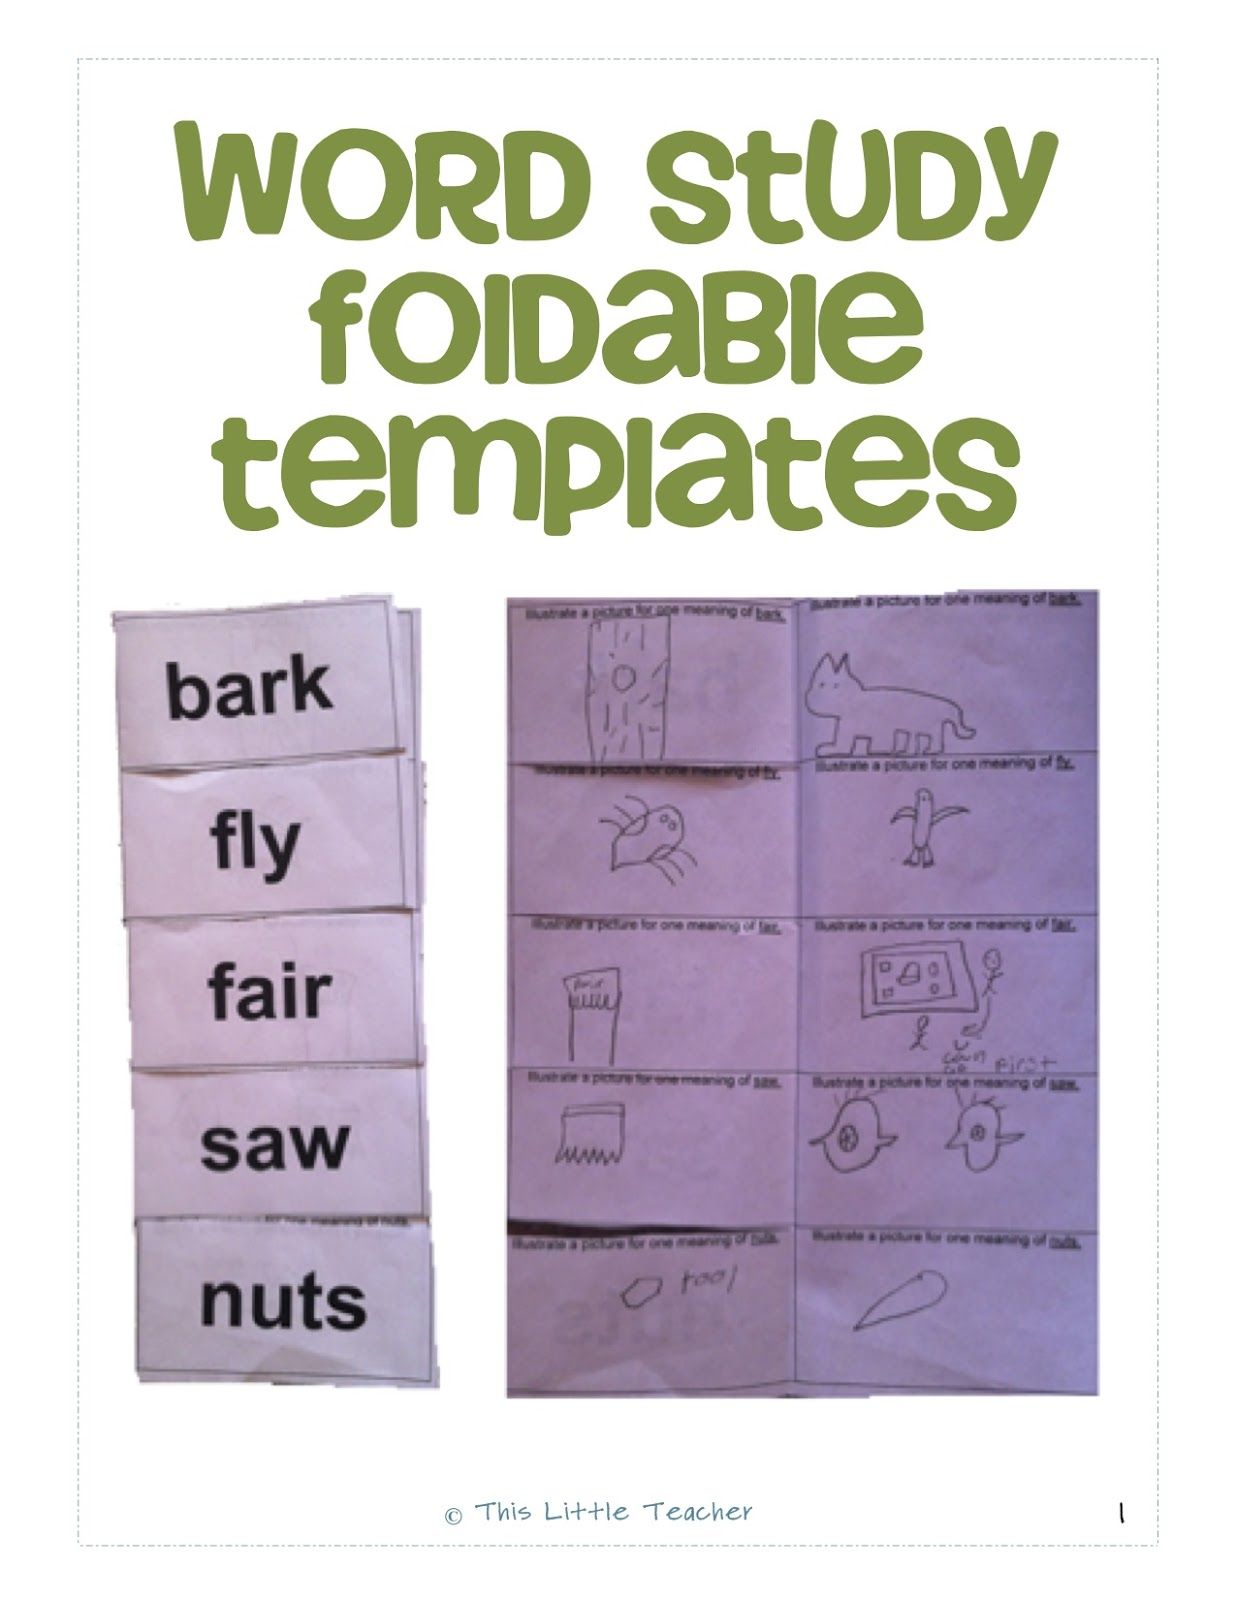 Word Study Foldable Templates